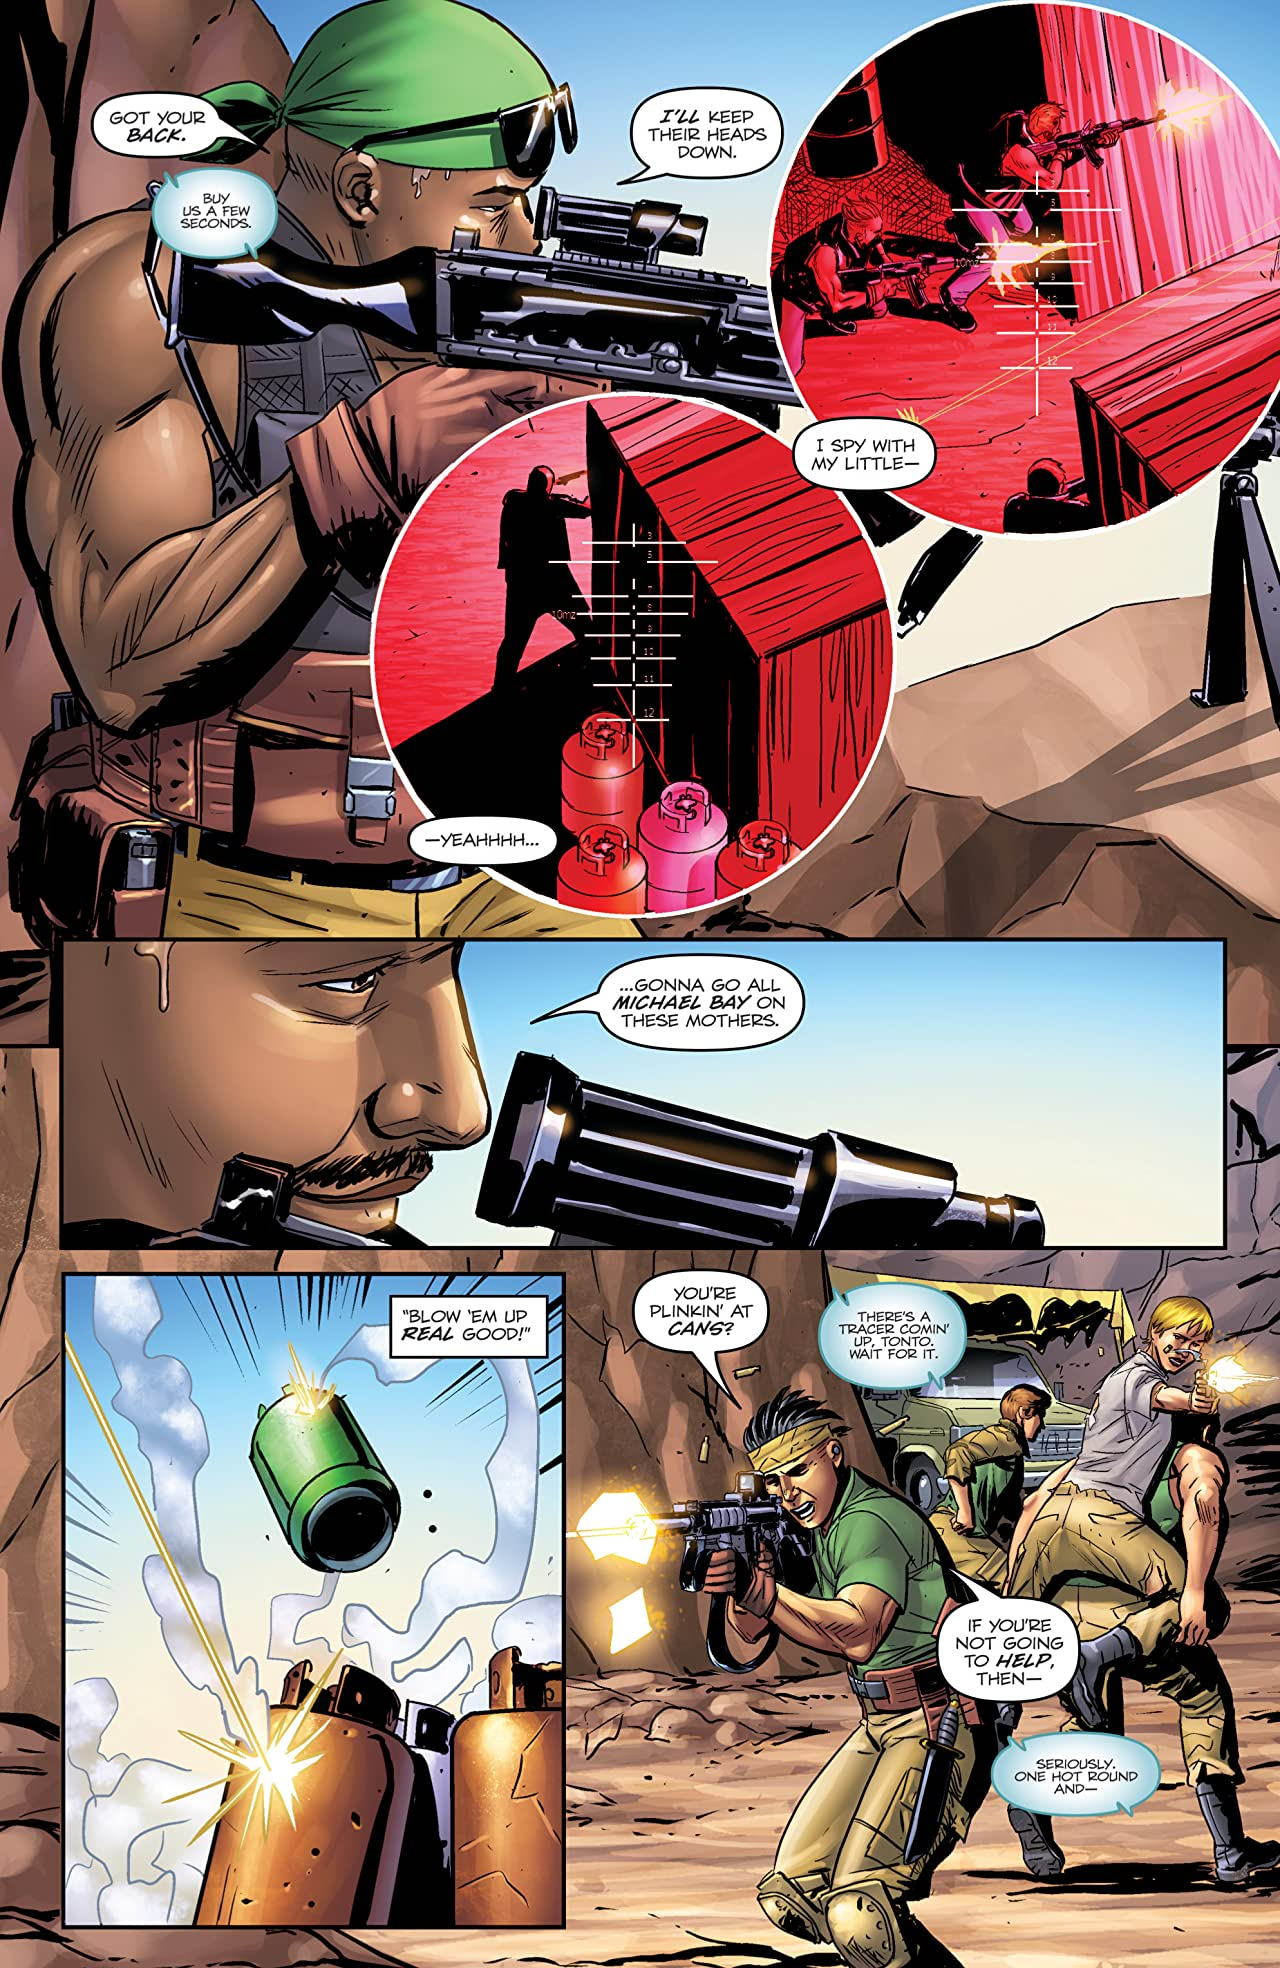 G.I. Joe: Special Missions #7